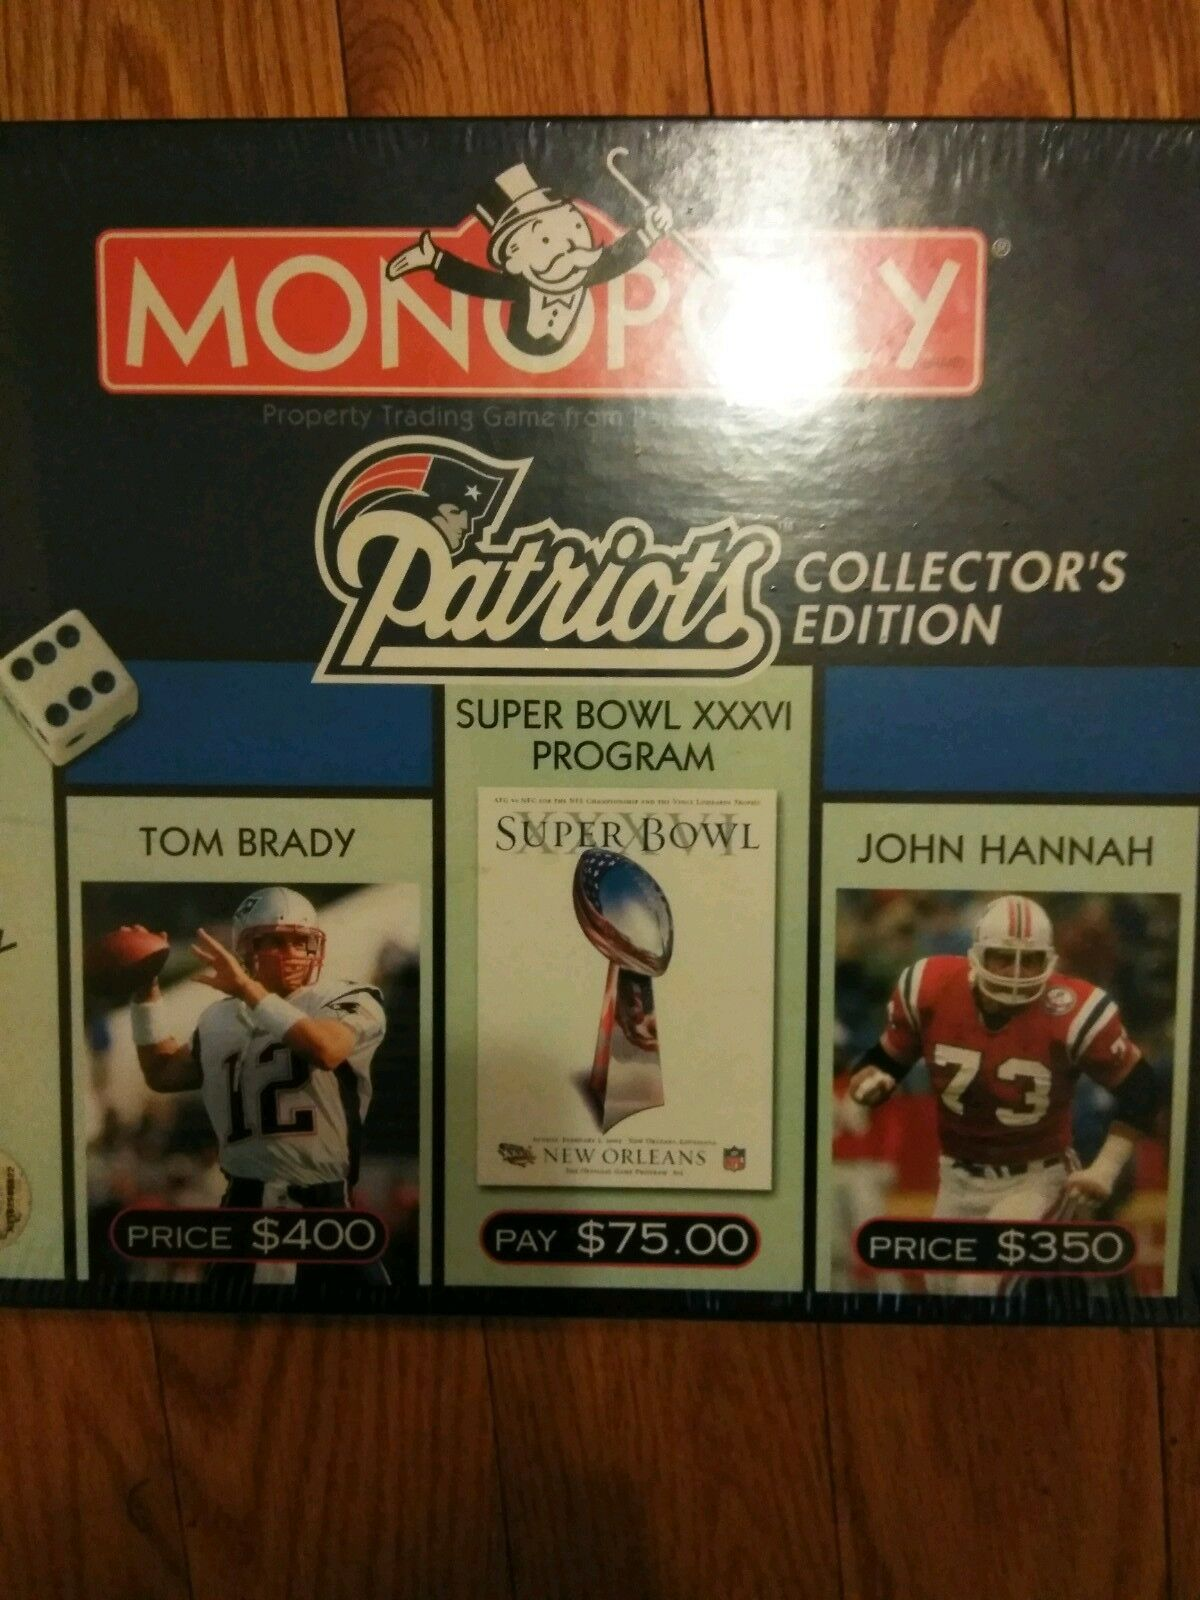 2002 New England Patriots Collector's Edition Monopoly Monopoly Monopoly Game 22b765